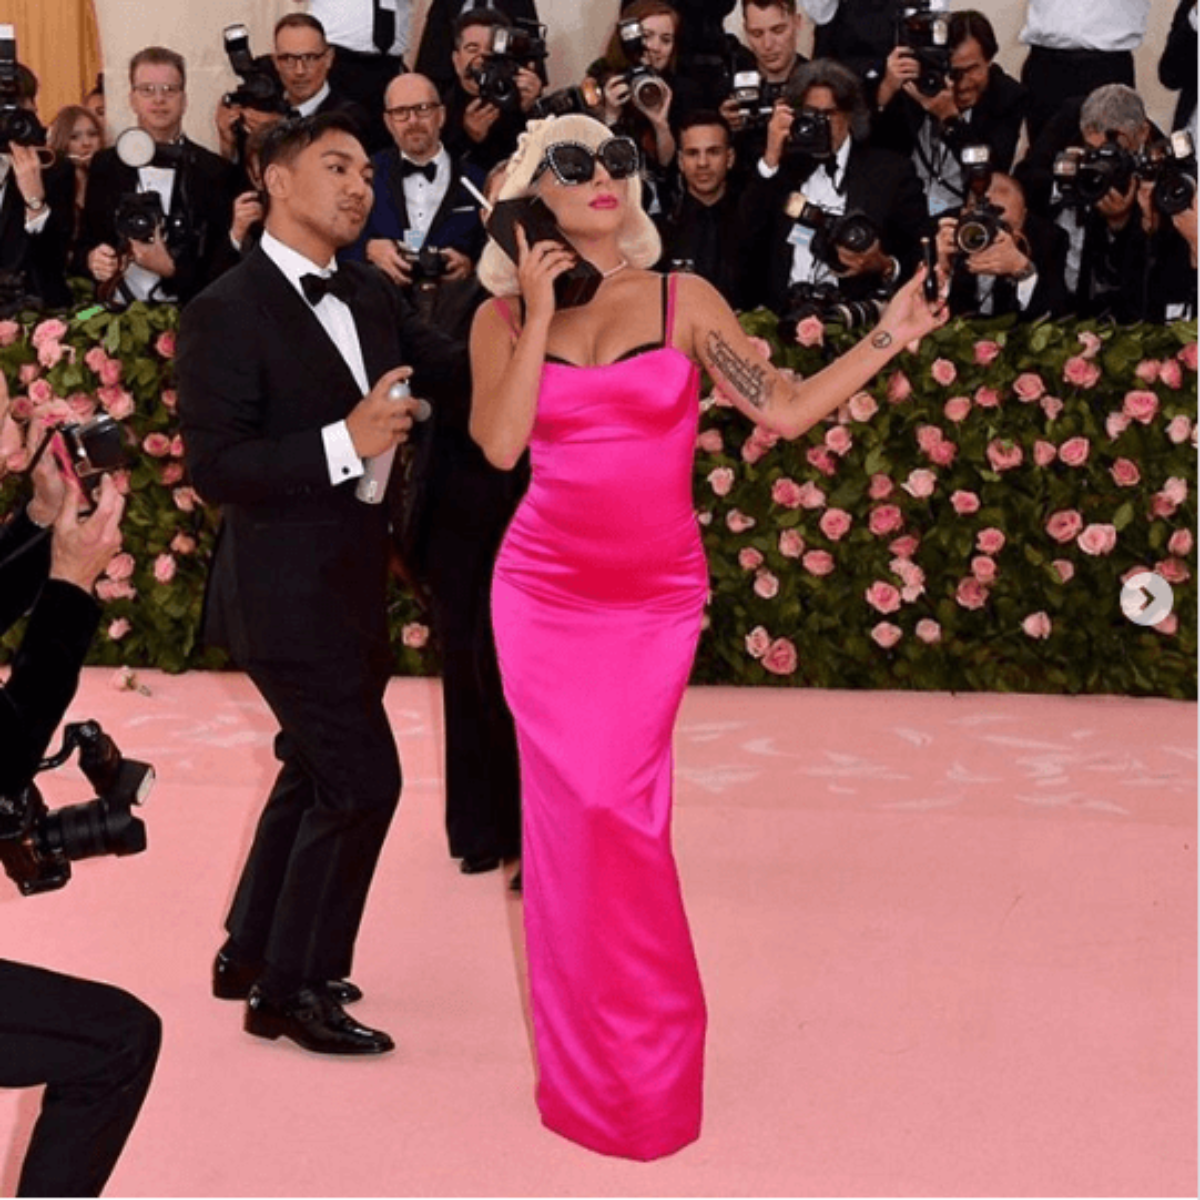 Lady Gaga at Met Gala in hot pink dress and blonde bob